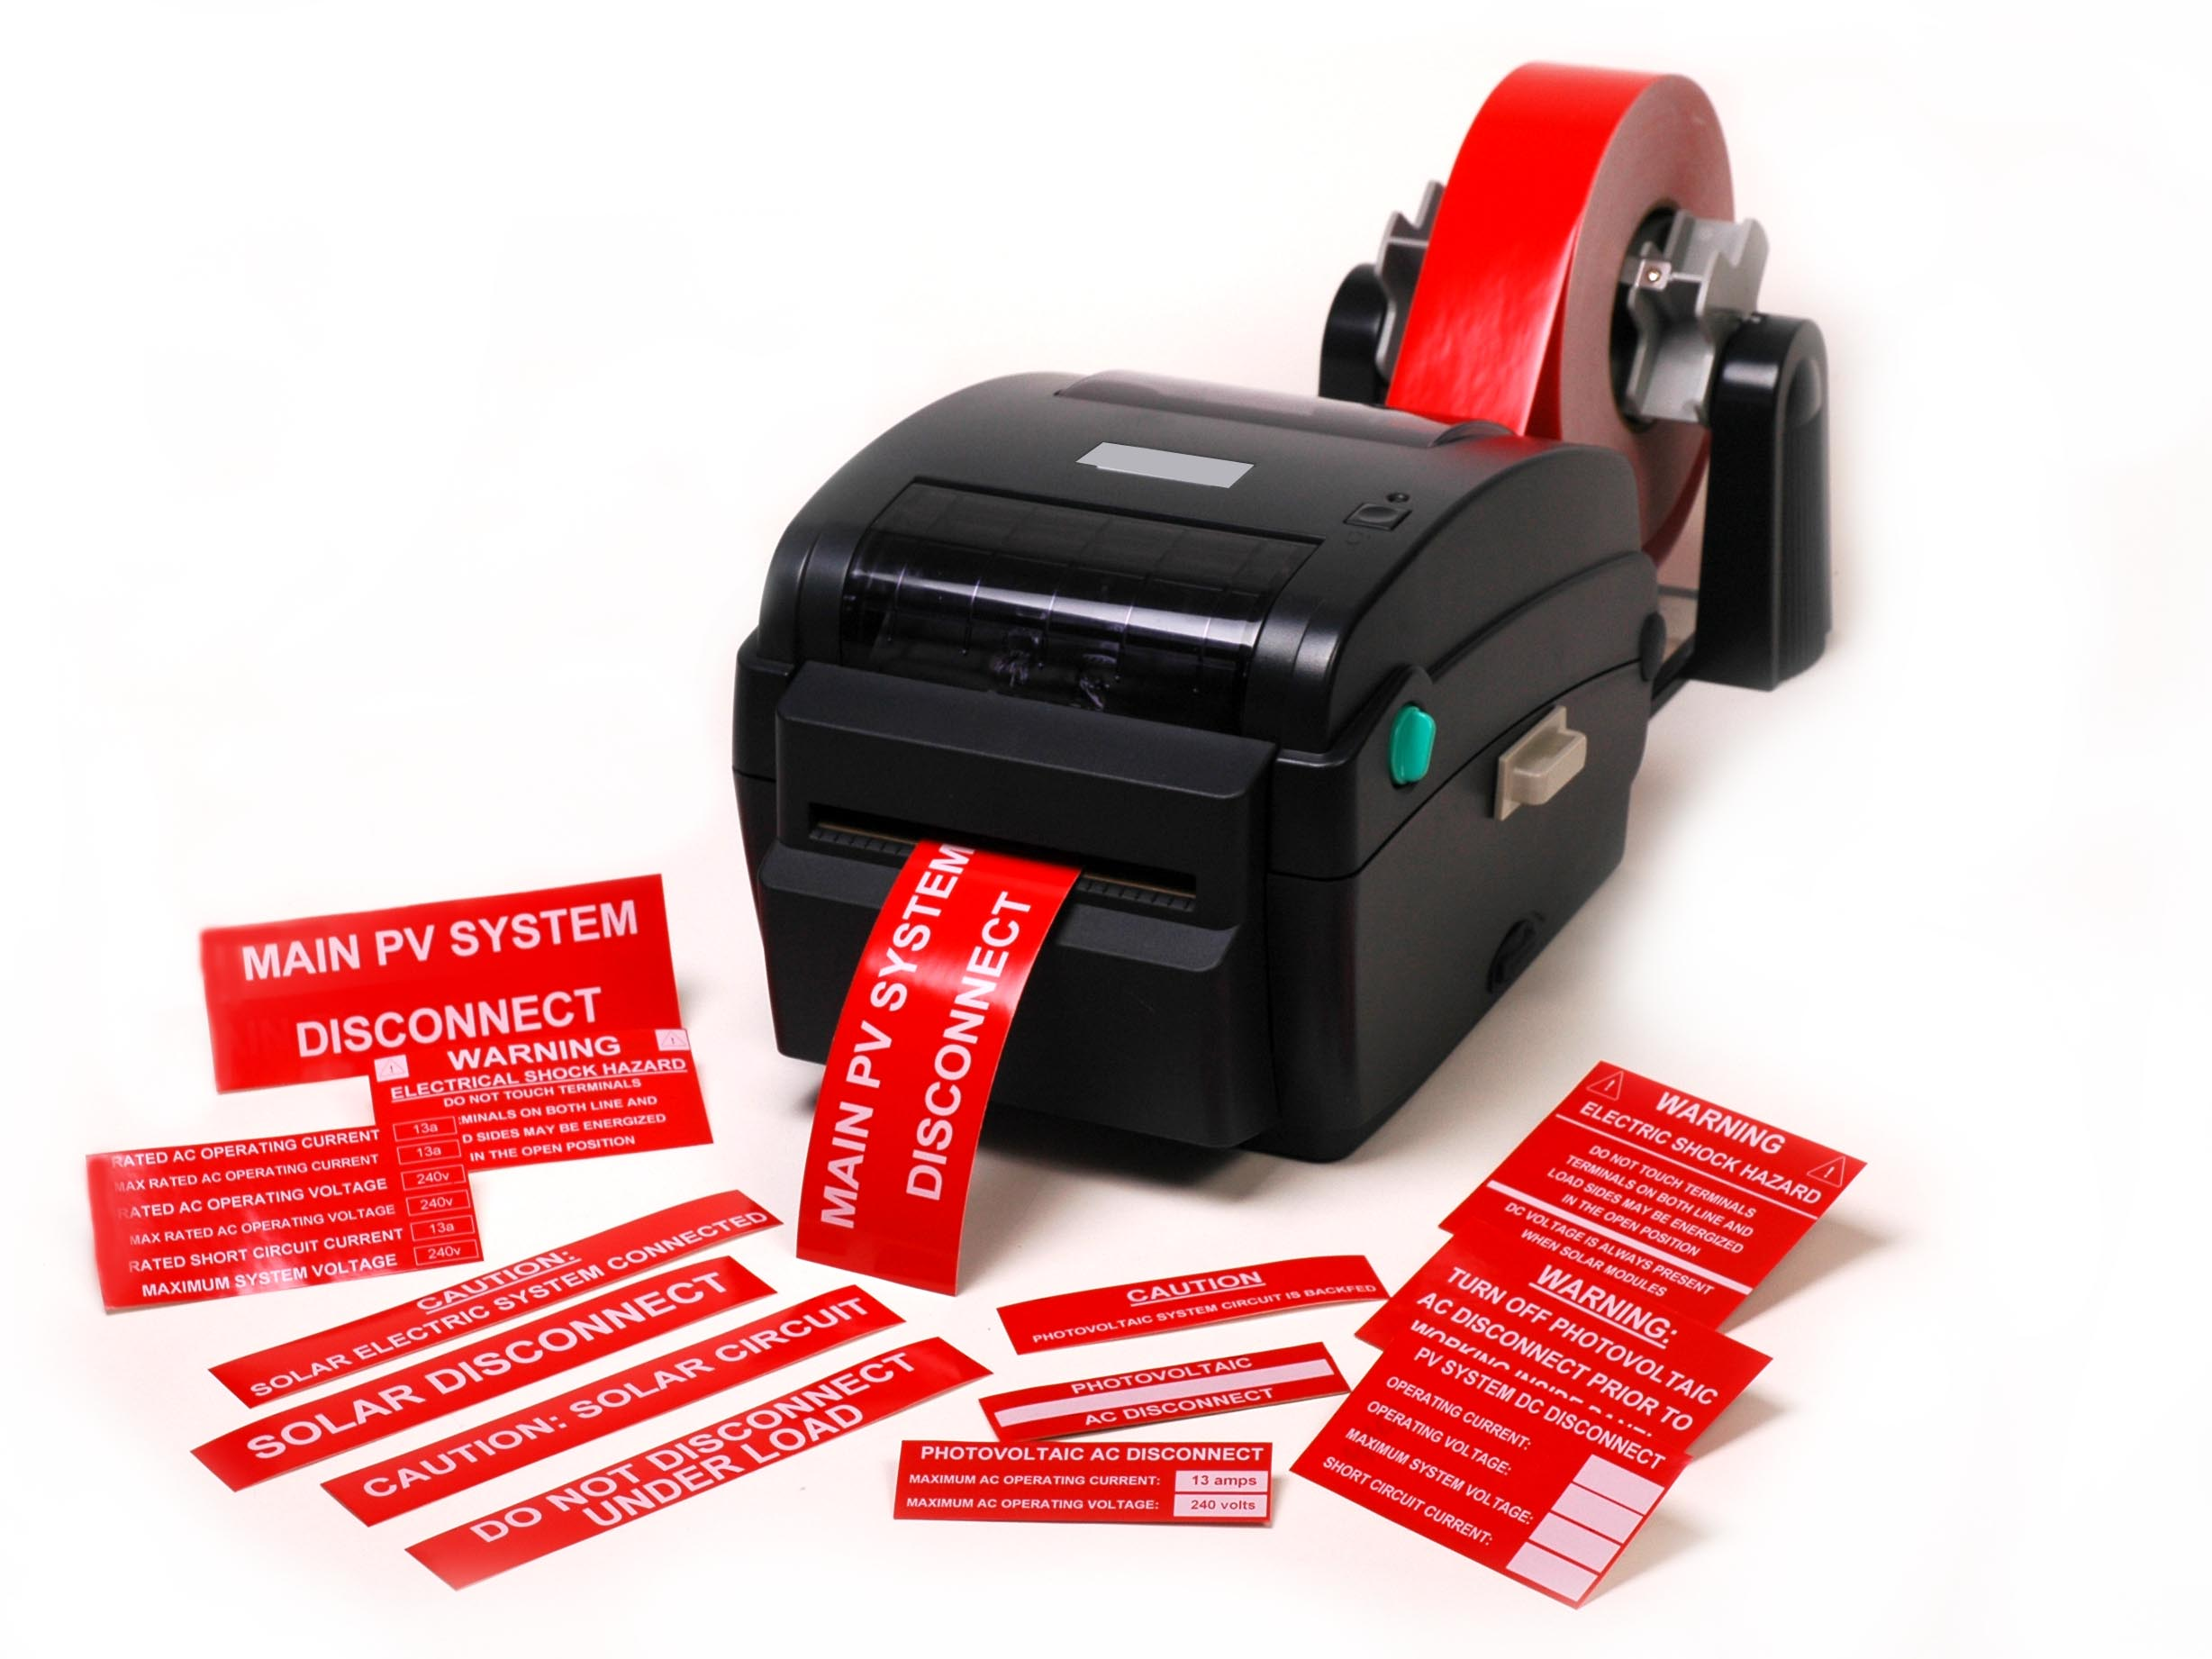 Tag printer Point of Sale hardware allows you to enter merchandise information faster and more accurately.